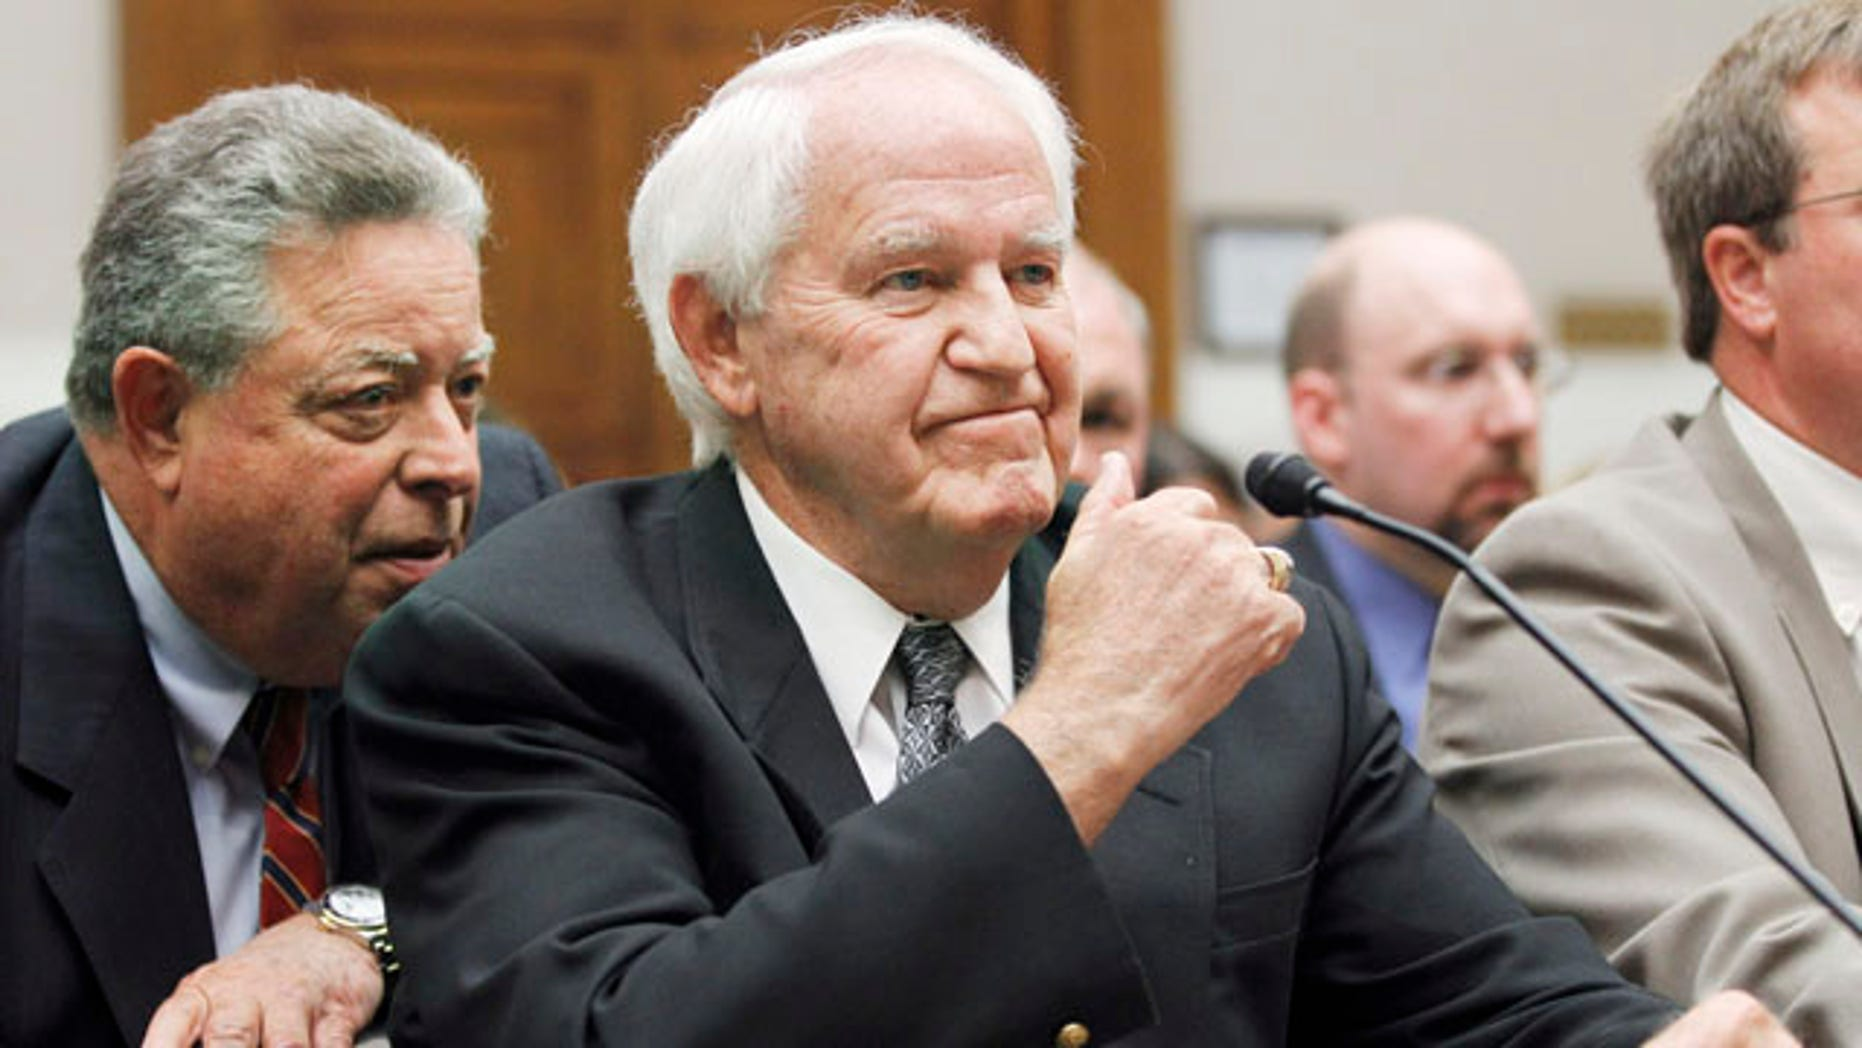 Sept. 22: Hillandale Farms of Iowa President Orland Bethel, right, confers with his lawyer on Capitol Hill in Washington.